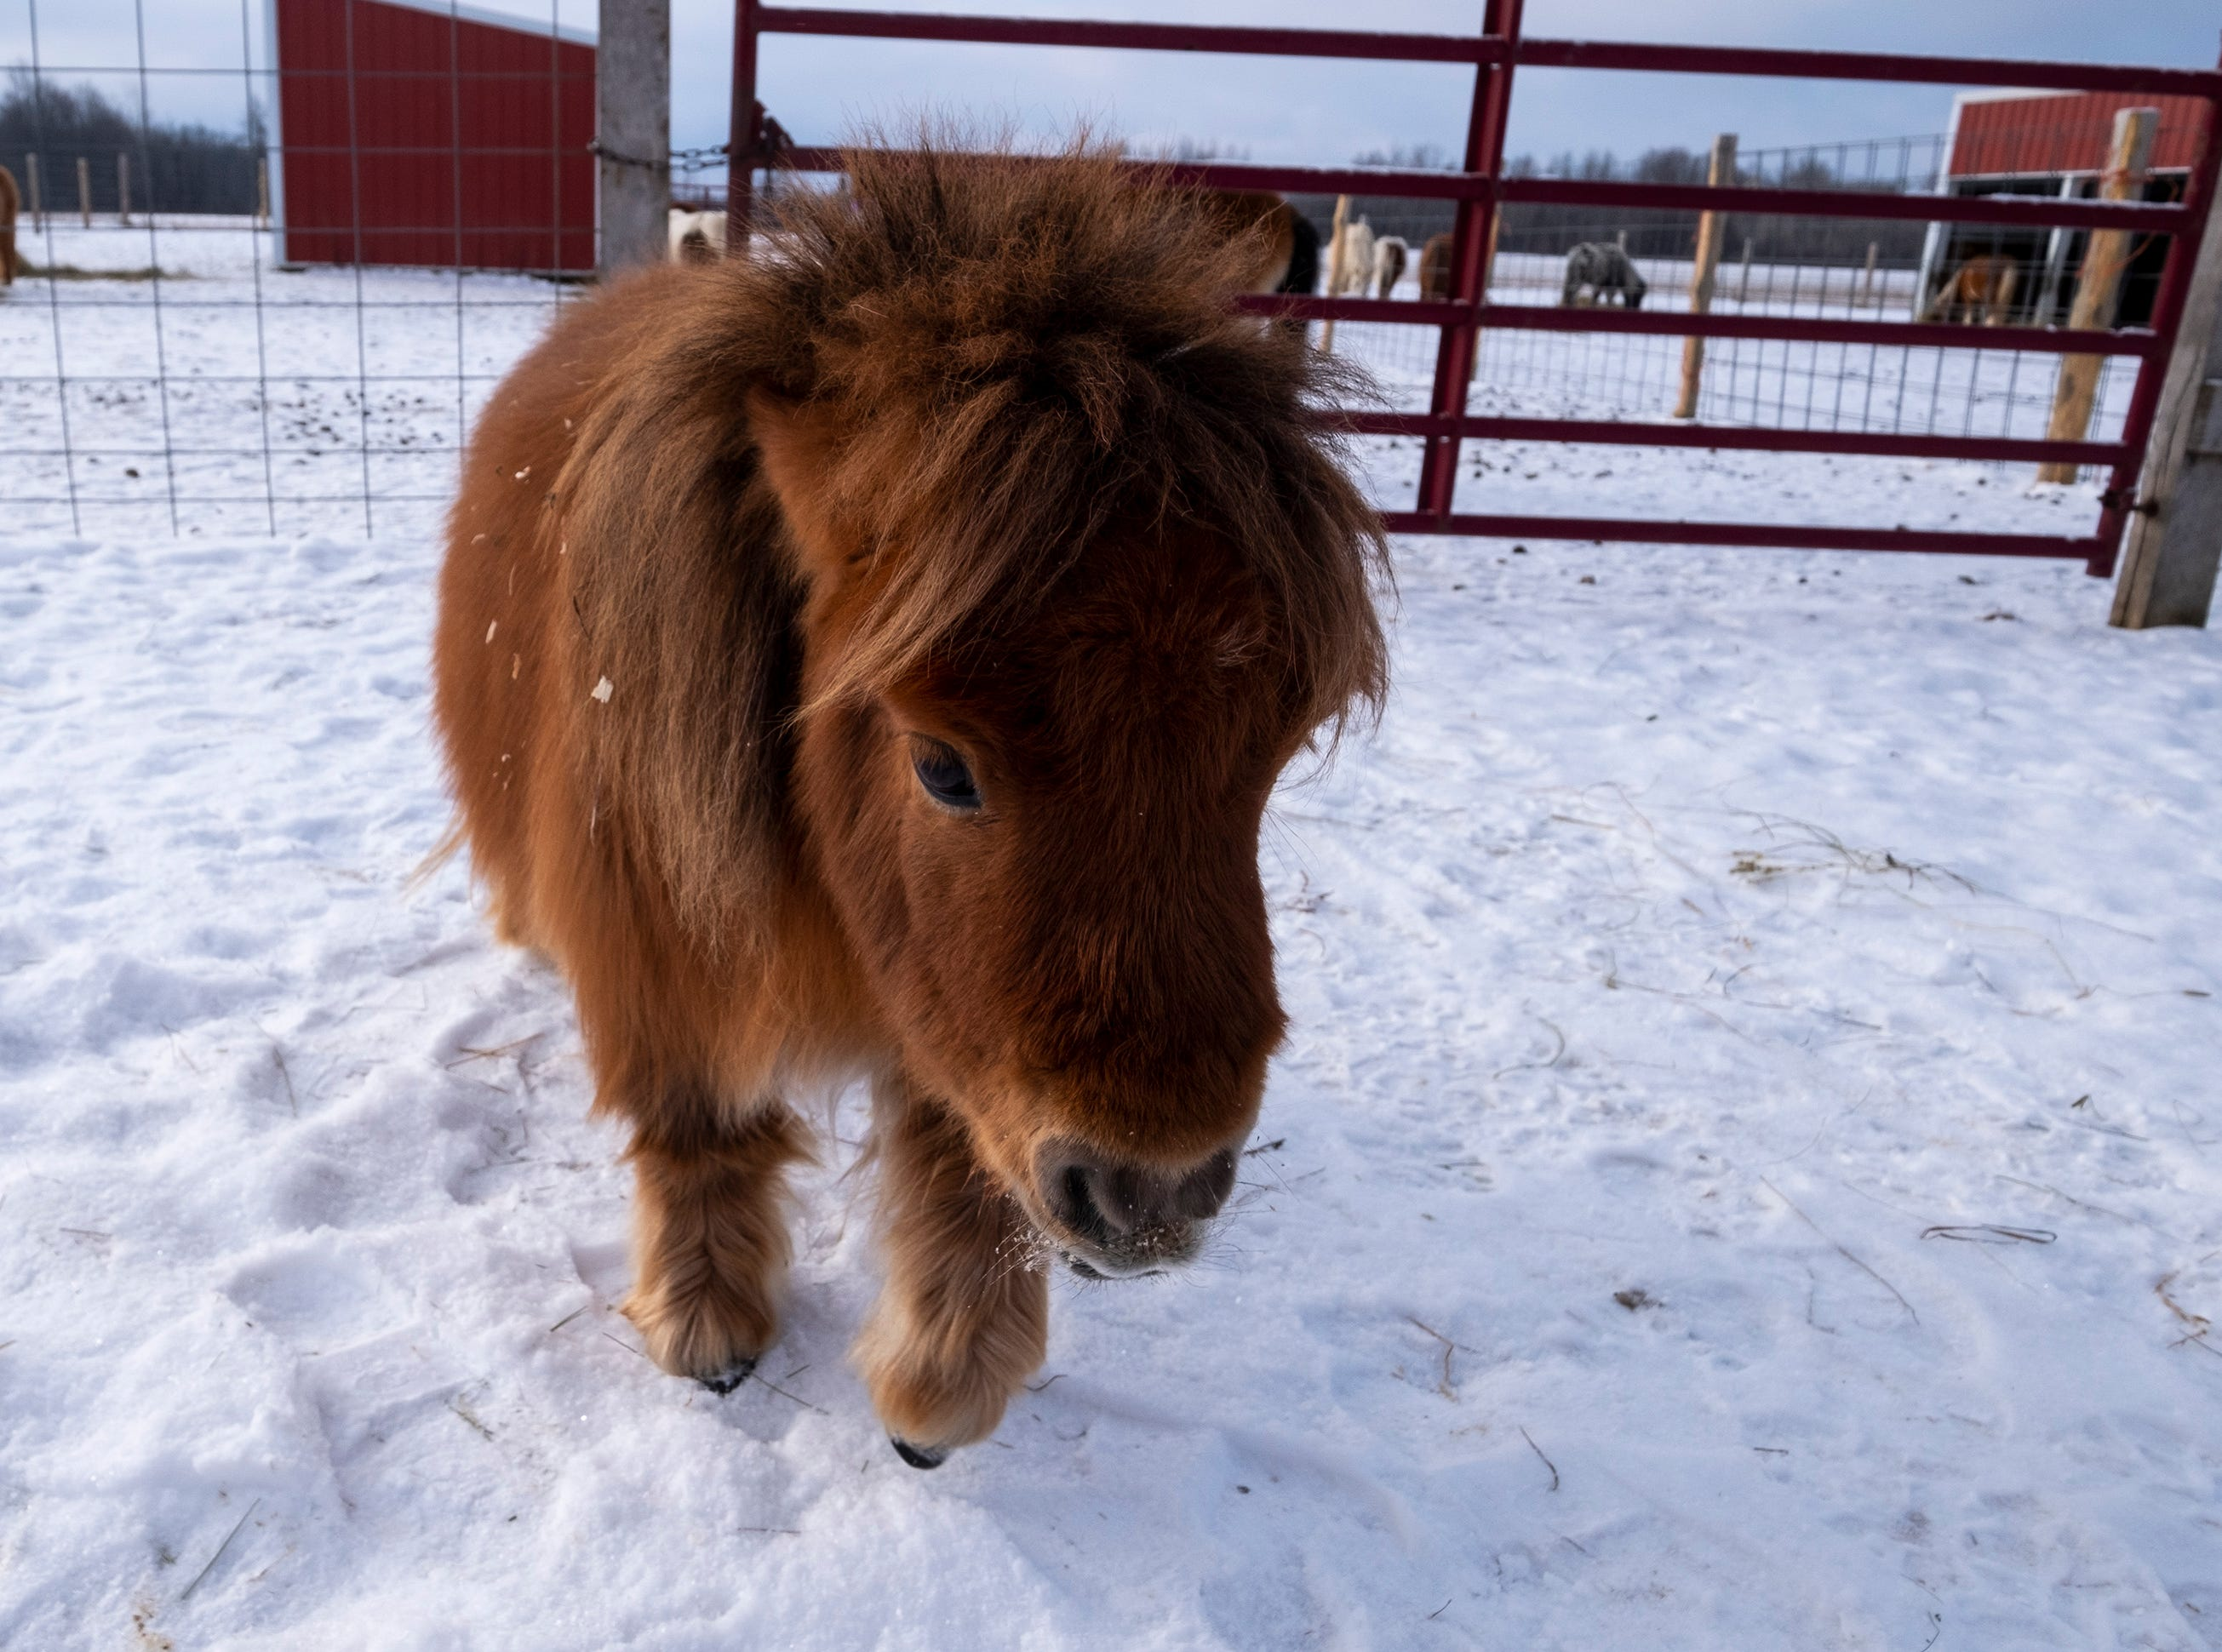 Miller said people want to adopt the dwarf miniature horses to keep them inside as pets, not knowing about the health problems that can be caused by dwarfism. The animal's organs are the same size as a full-grown miniature horse, but inside a smaller body, and often have a significantly shorter lifespan.